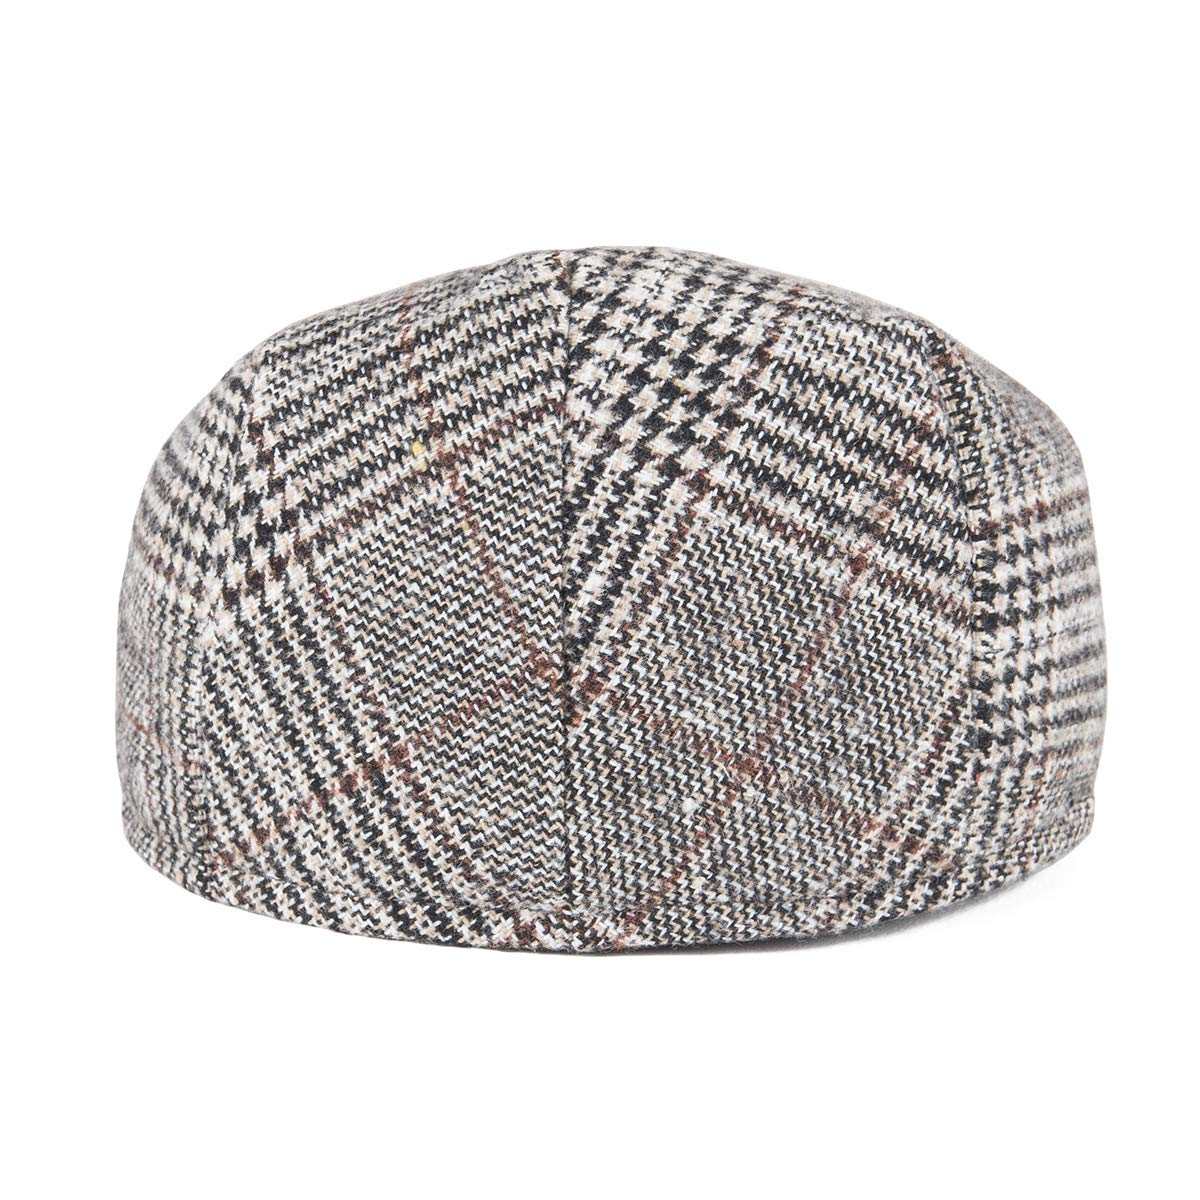 8baef0f89 JANGOUL Kids Wool Tweed Flat Cap Herringbone Boy Girl Newsboy Caps Infant  Toddler Child Youth Beret Hat Ivy Gatsby Cap